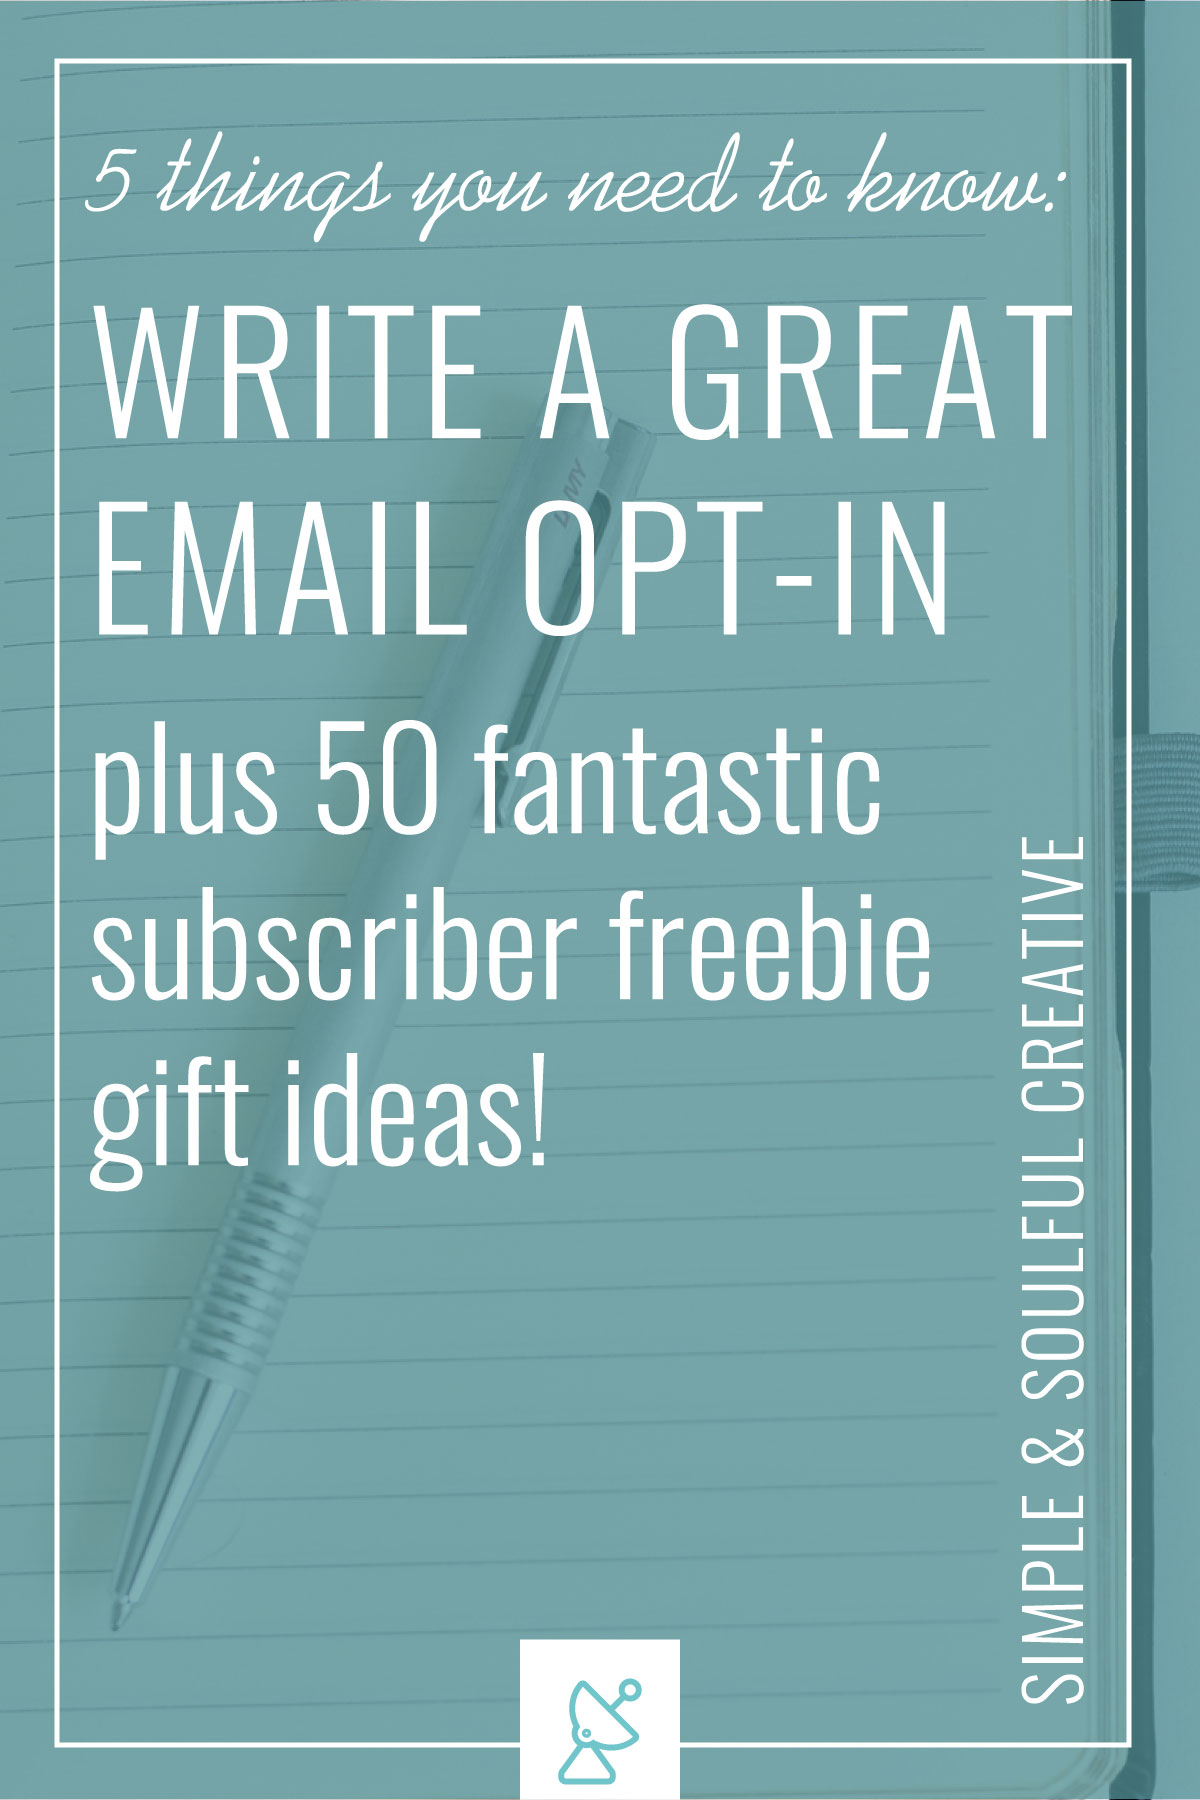 If you've struggled to create an email opt-in because you have no idea where to start, this post is for you! Learn the five simple things you need to know about creating an awesome freebie gift for your subscribers.